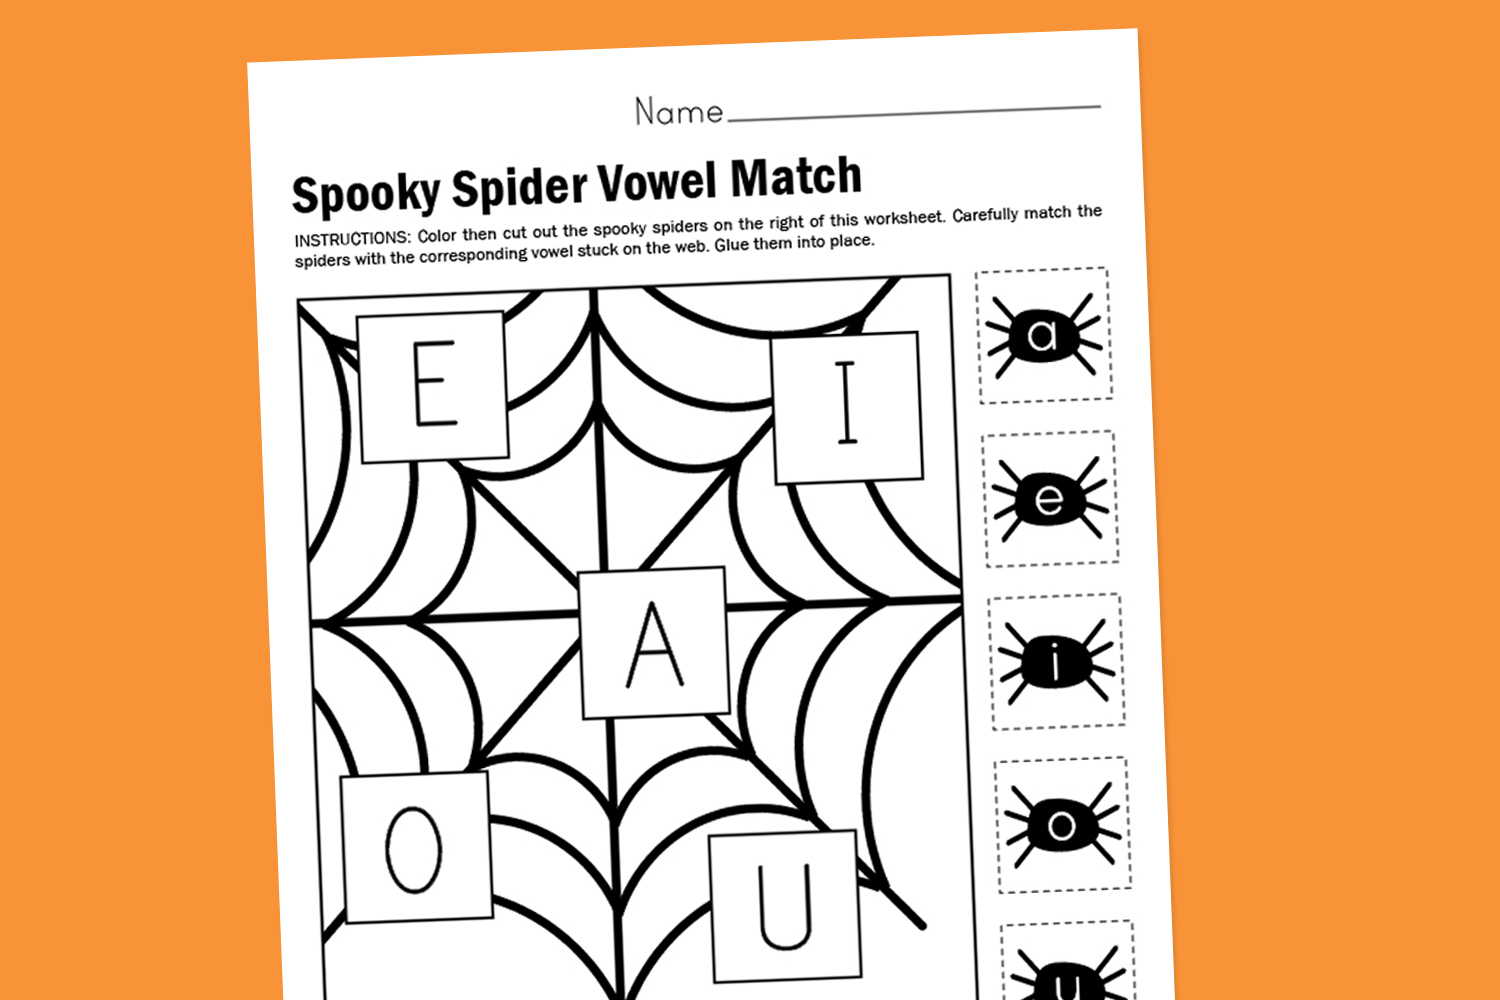 Worksheet Wednesday Spooky Spider Vowel Match